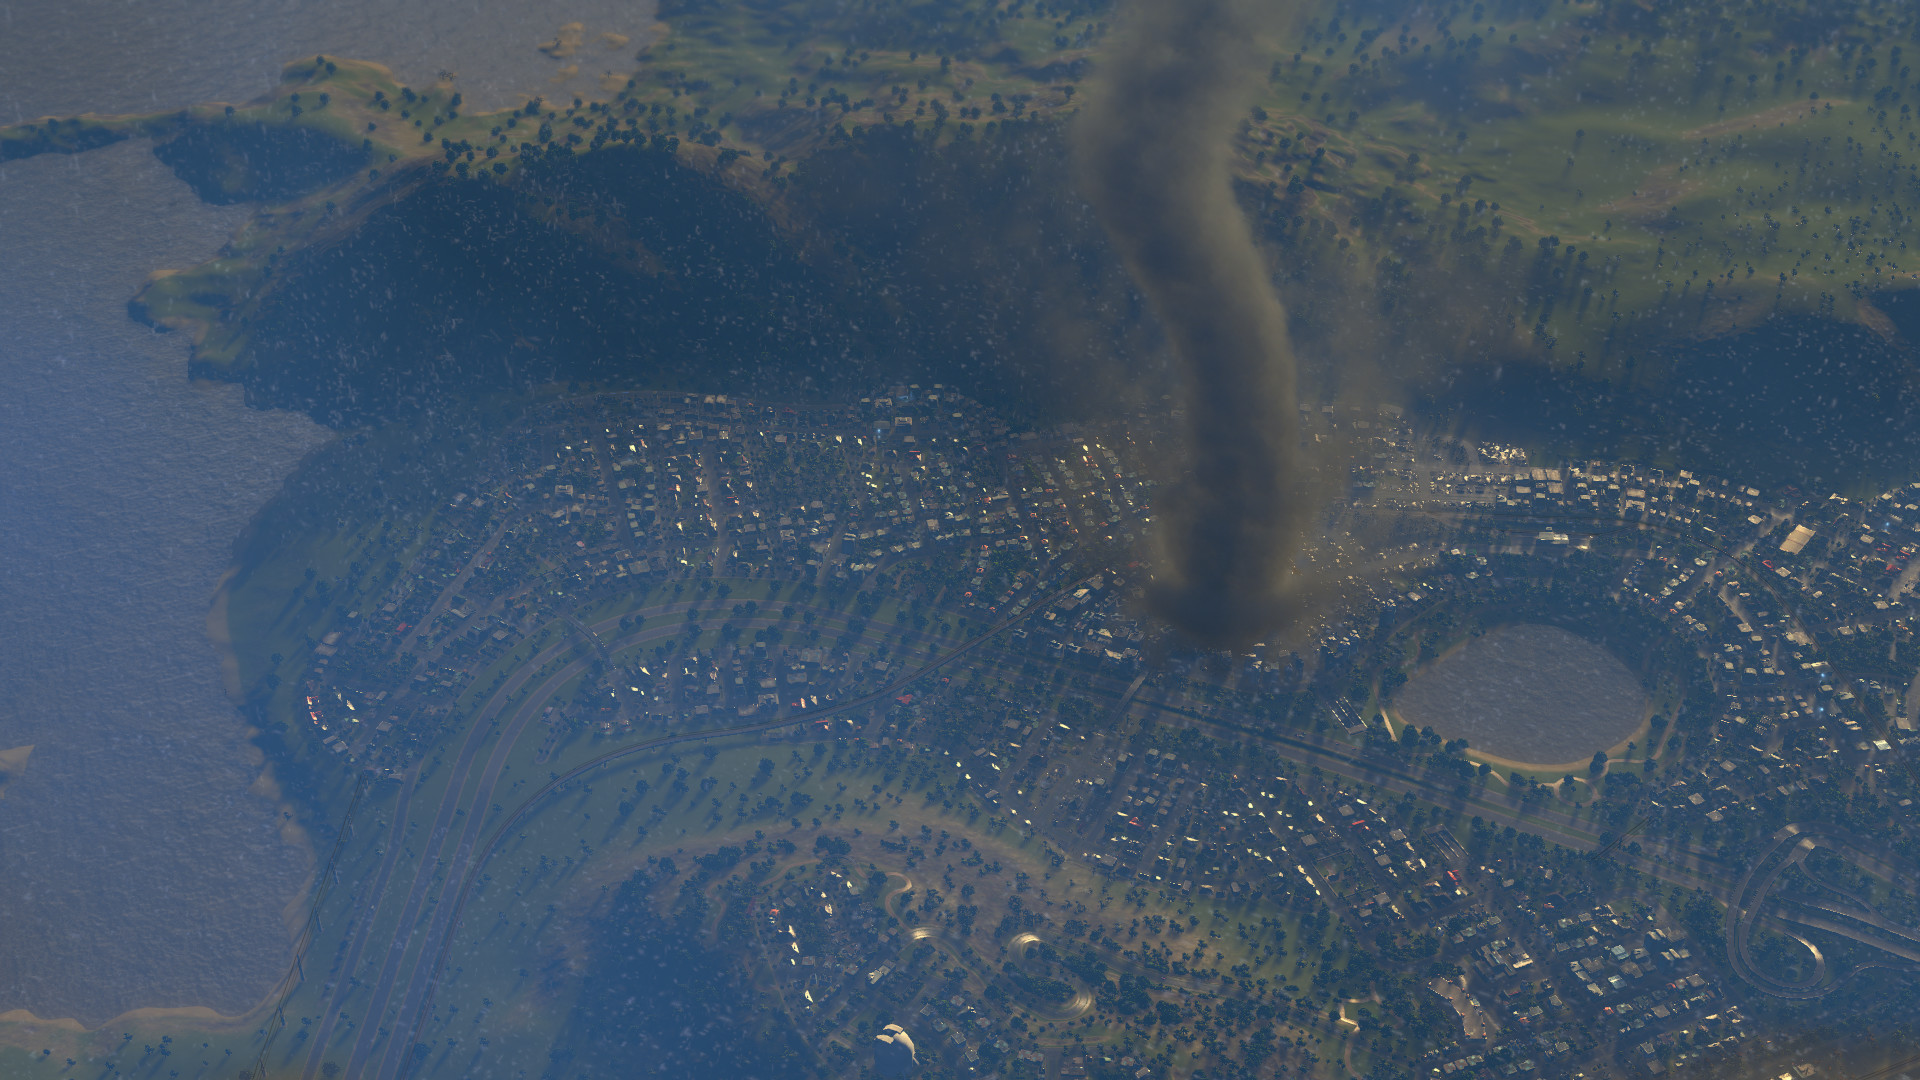 cities skylines natural disasters 2016 promotional art mobygames